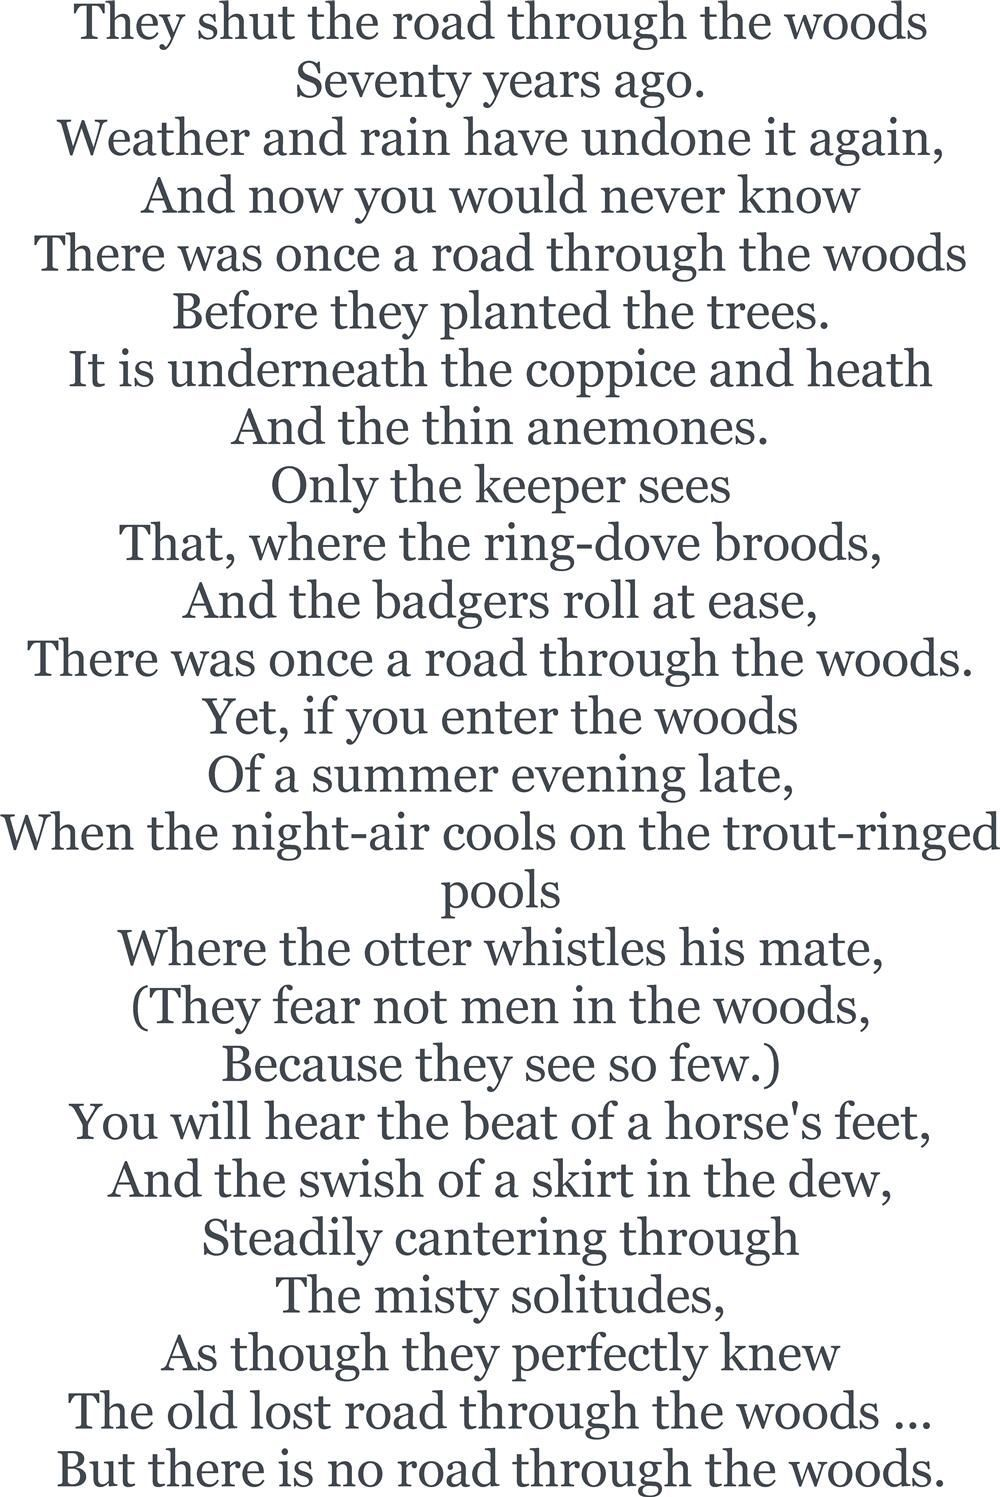 Image Result For The Way Through Wood By Rudyard Kipling If Poetry Word Poems Crossing Bar Alfred Lord Tennyson Paraphrase Analysi Meaning